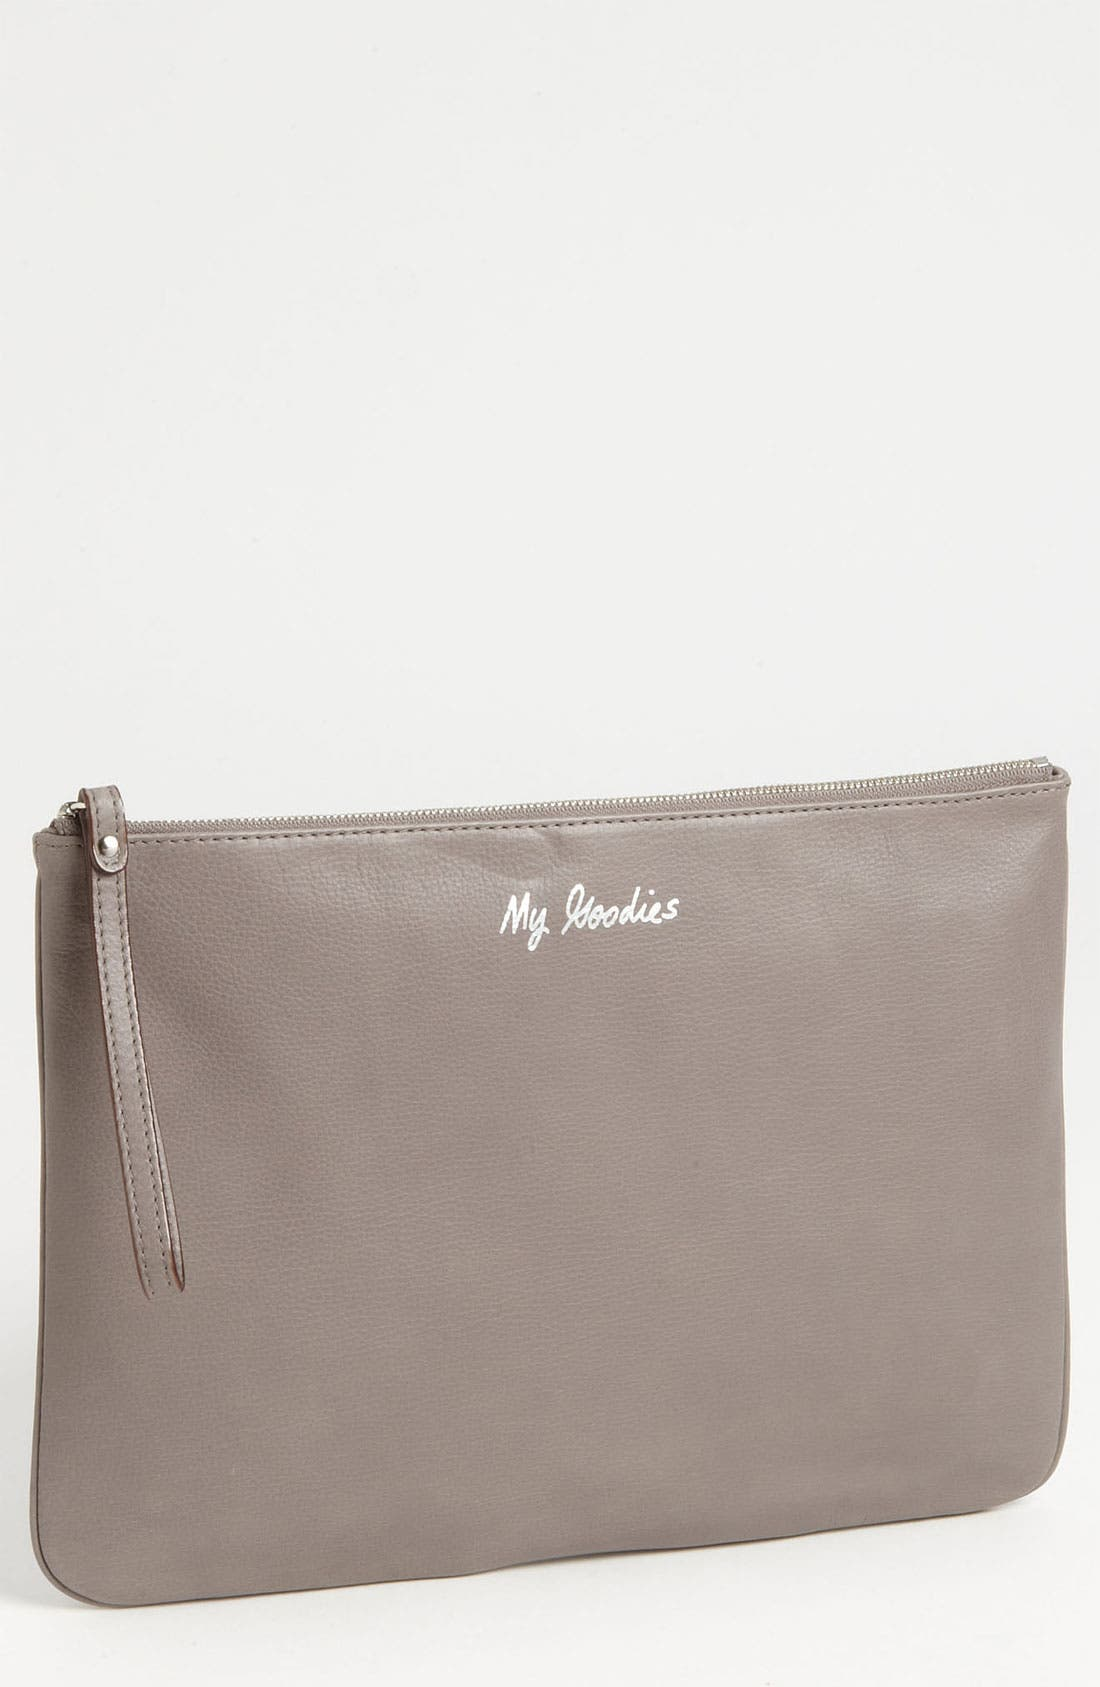 Alternate Image 1 Selected - Rebecca Minkoff 'My Goodies - Large' Pouch